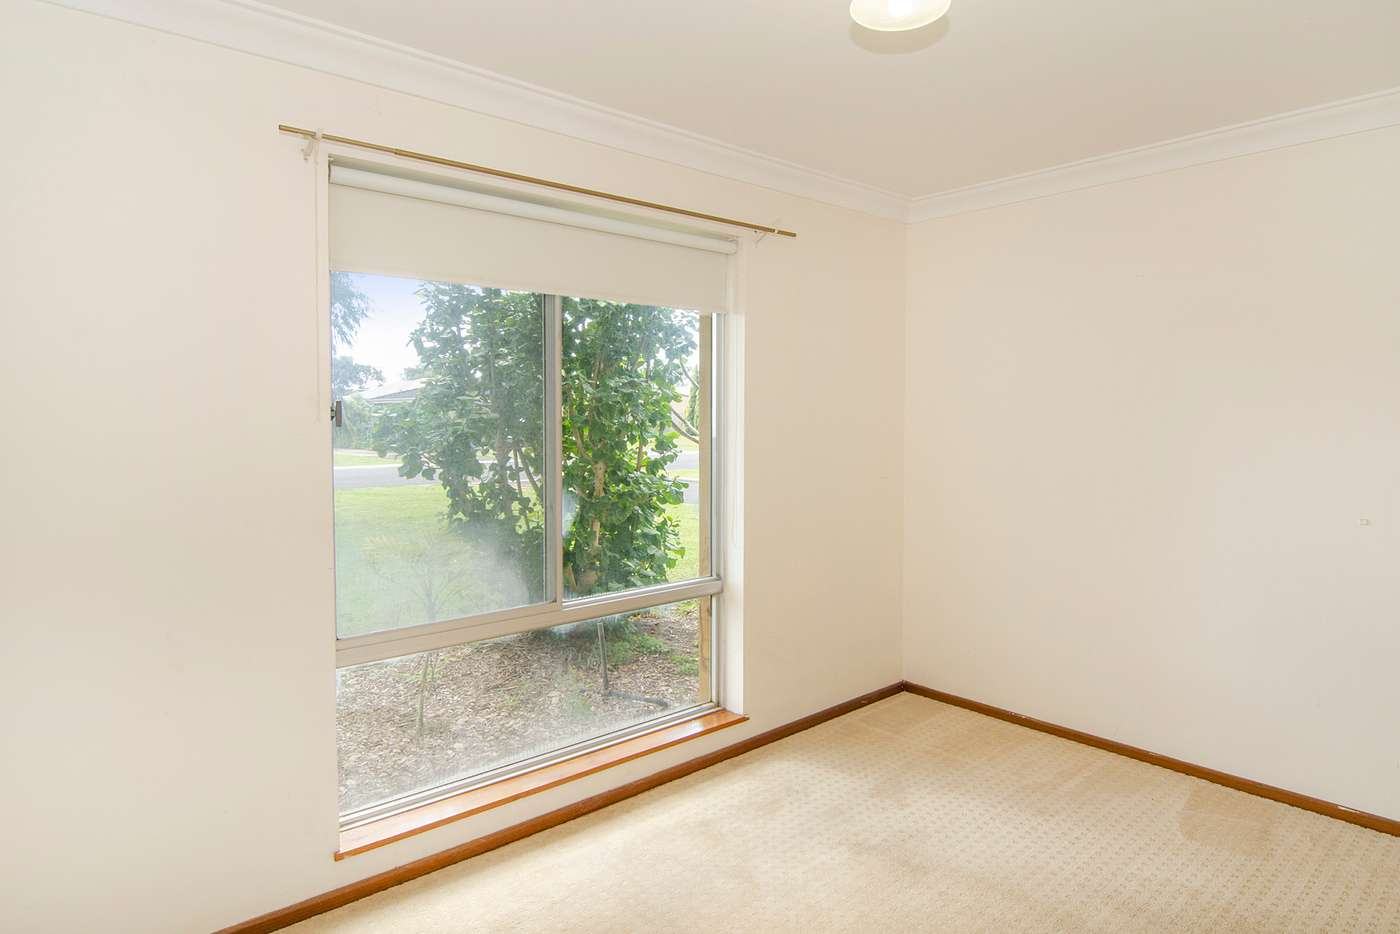 Seventh view of Homely house listing, 9 Jones Way, Abbey WA 6280